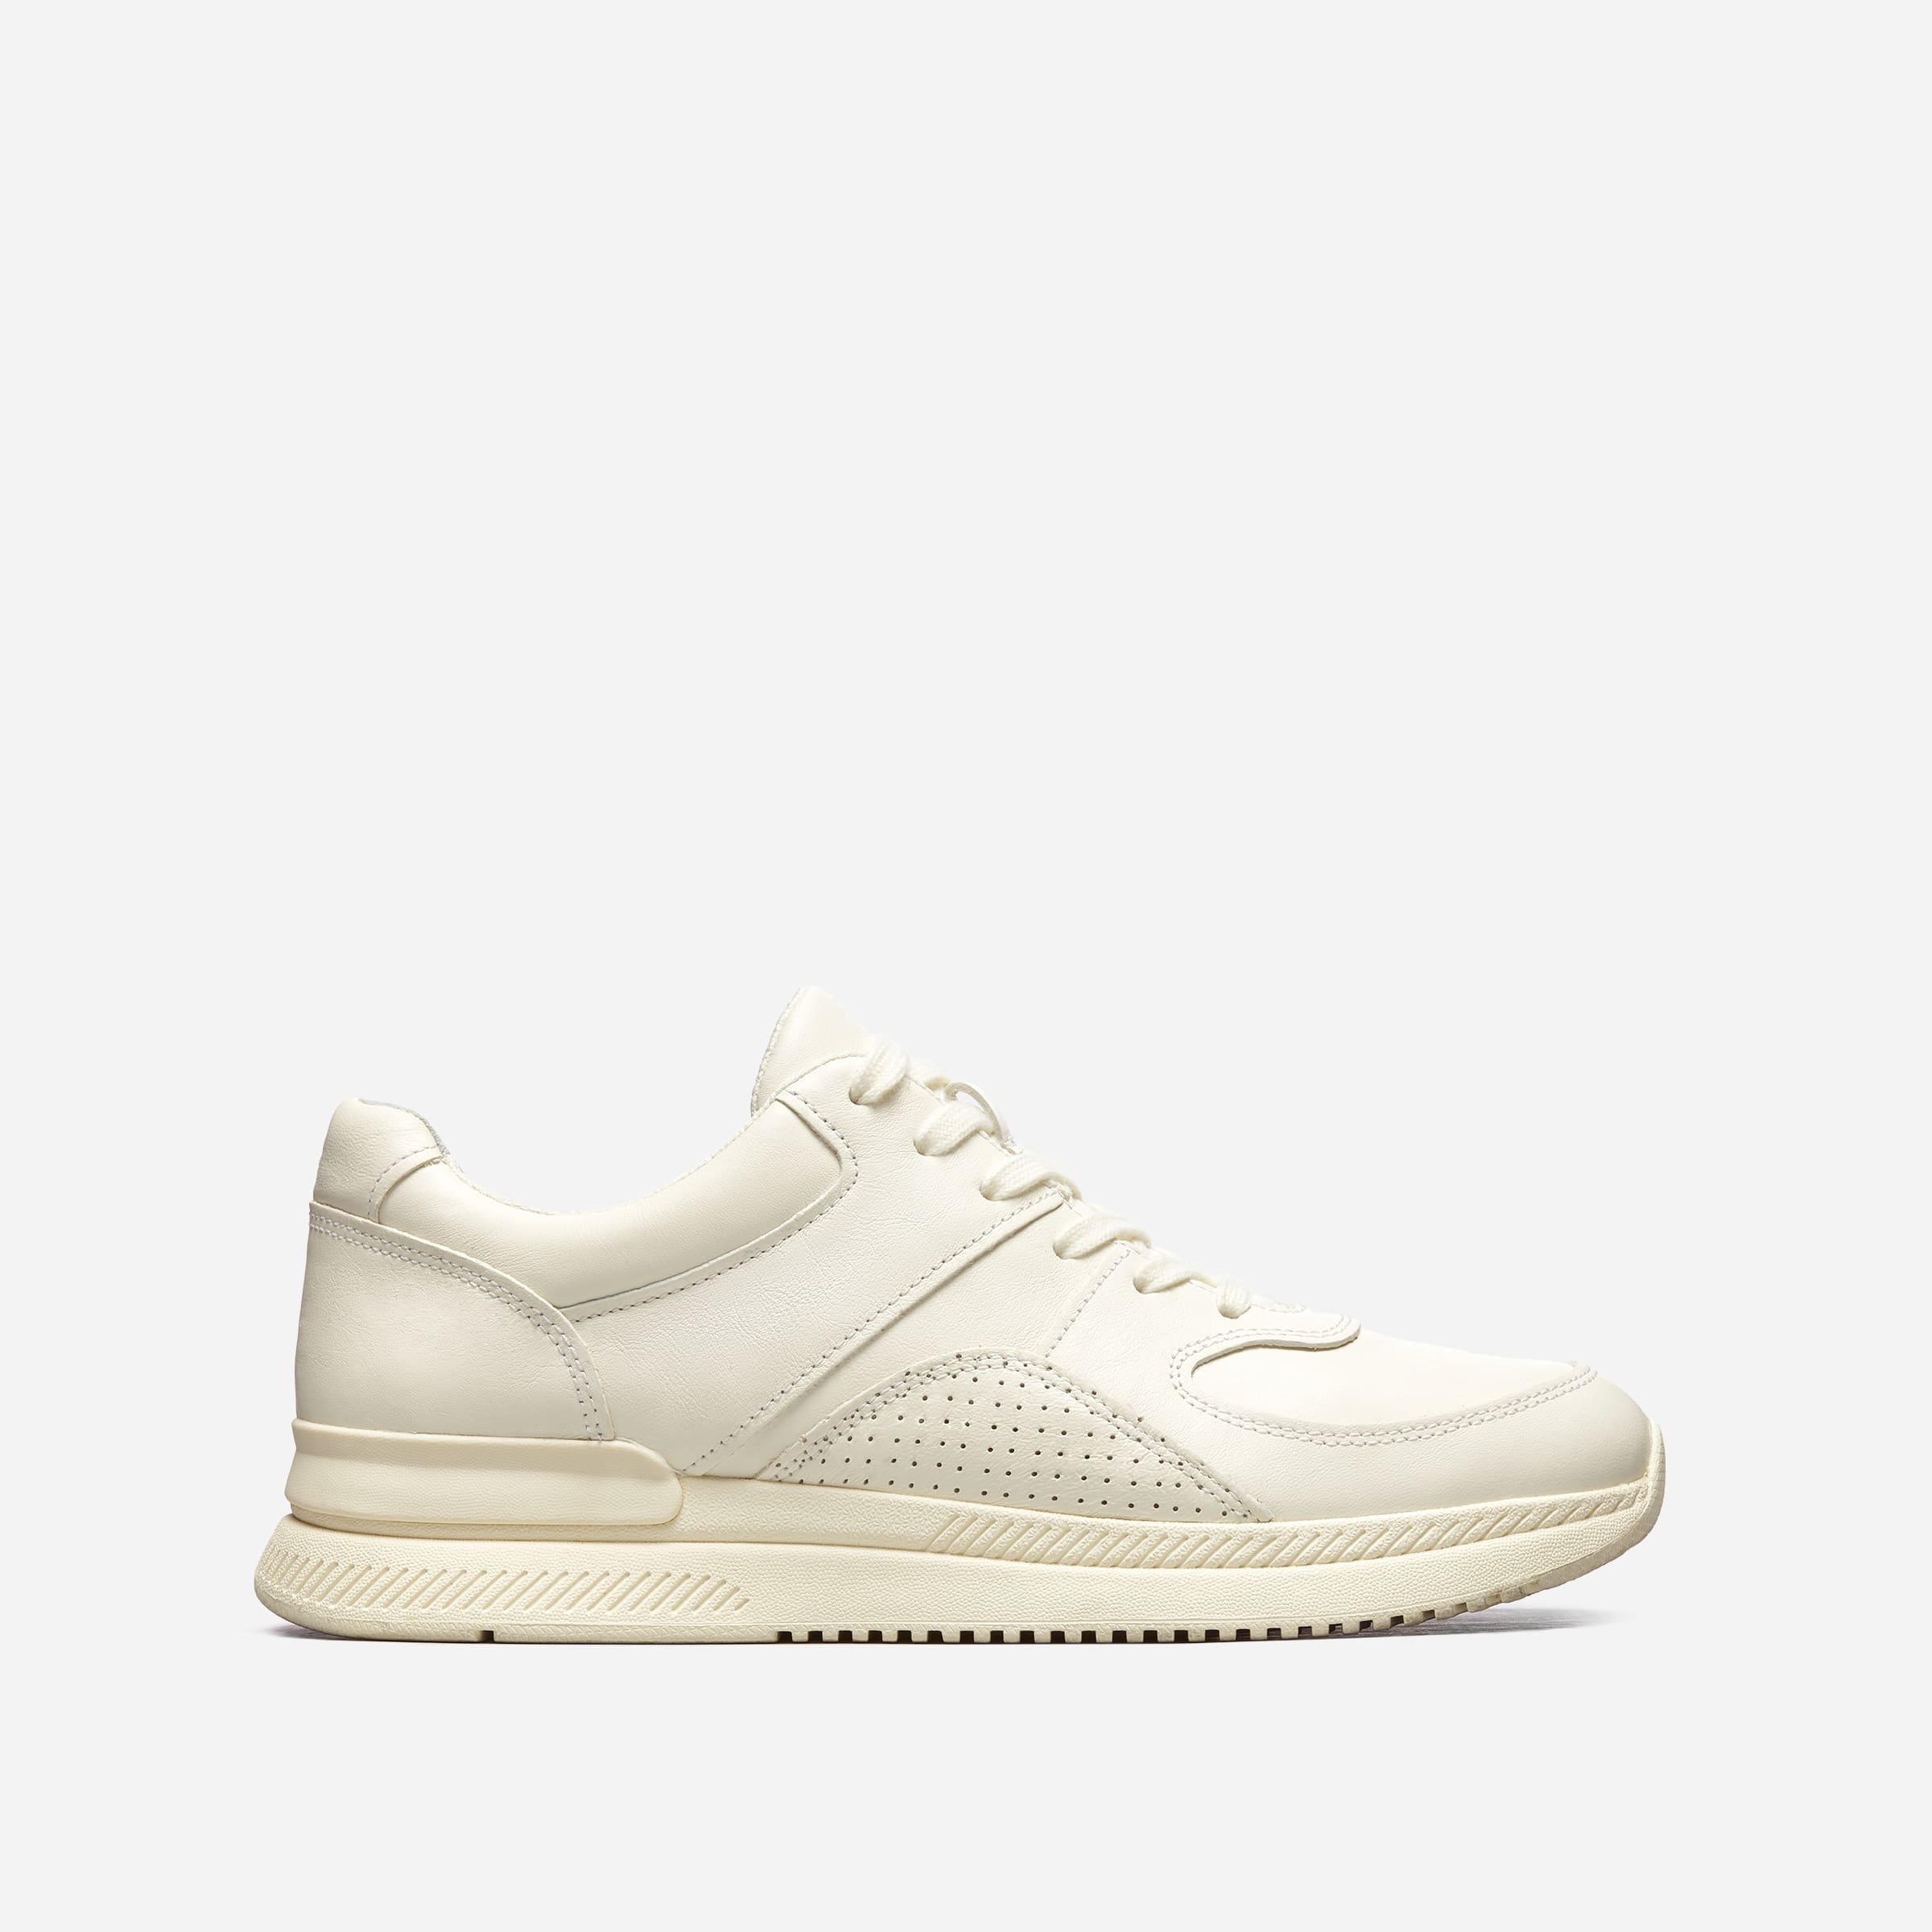 8. Everlane Tread Trainers sustainable running shoes